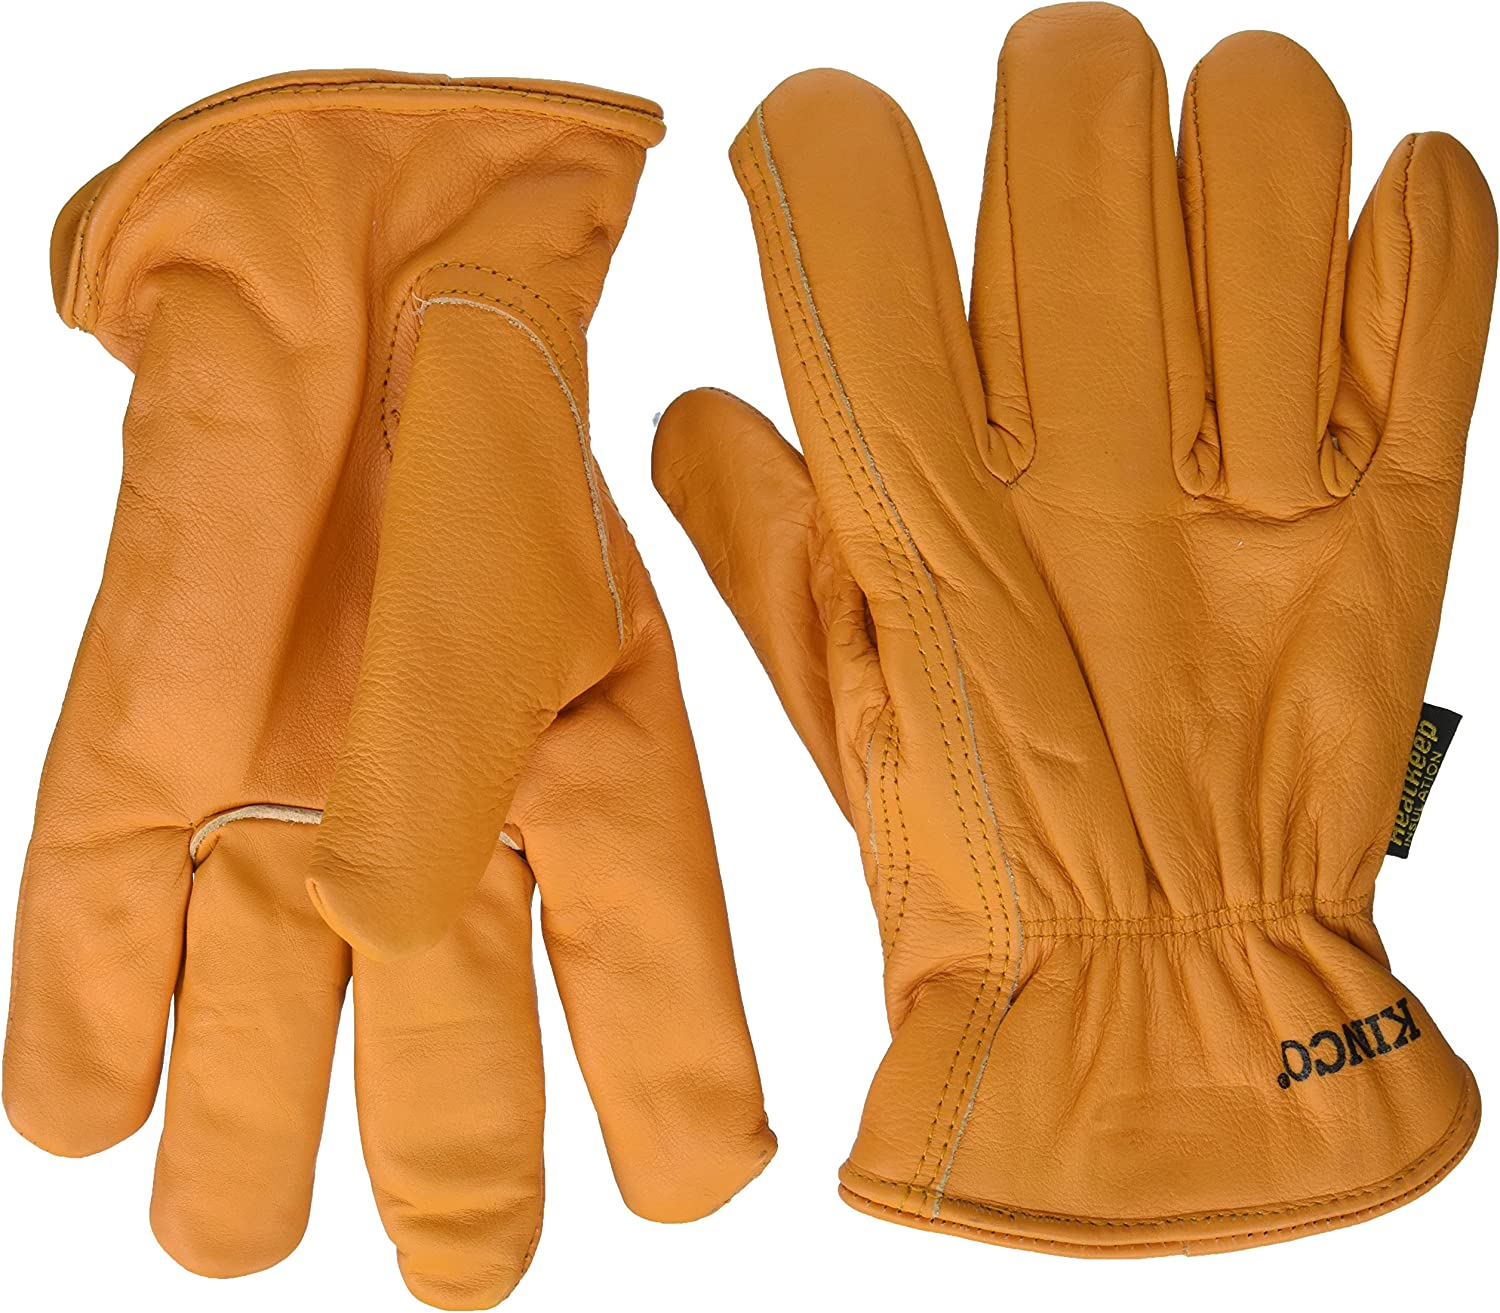 Getting Fit 35117008175 Kinco 0 Lined Grain Buffalo Leather Ranch and Work Glove, Single Pair, Medium,Orange